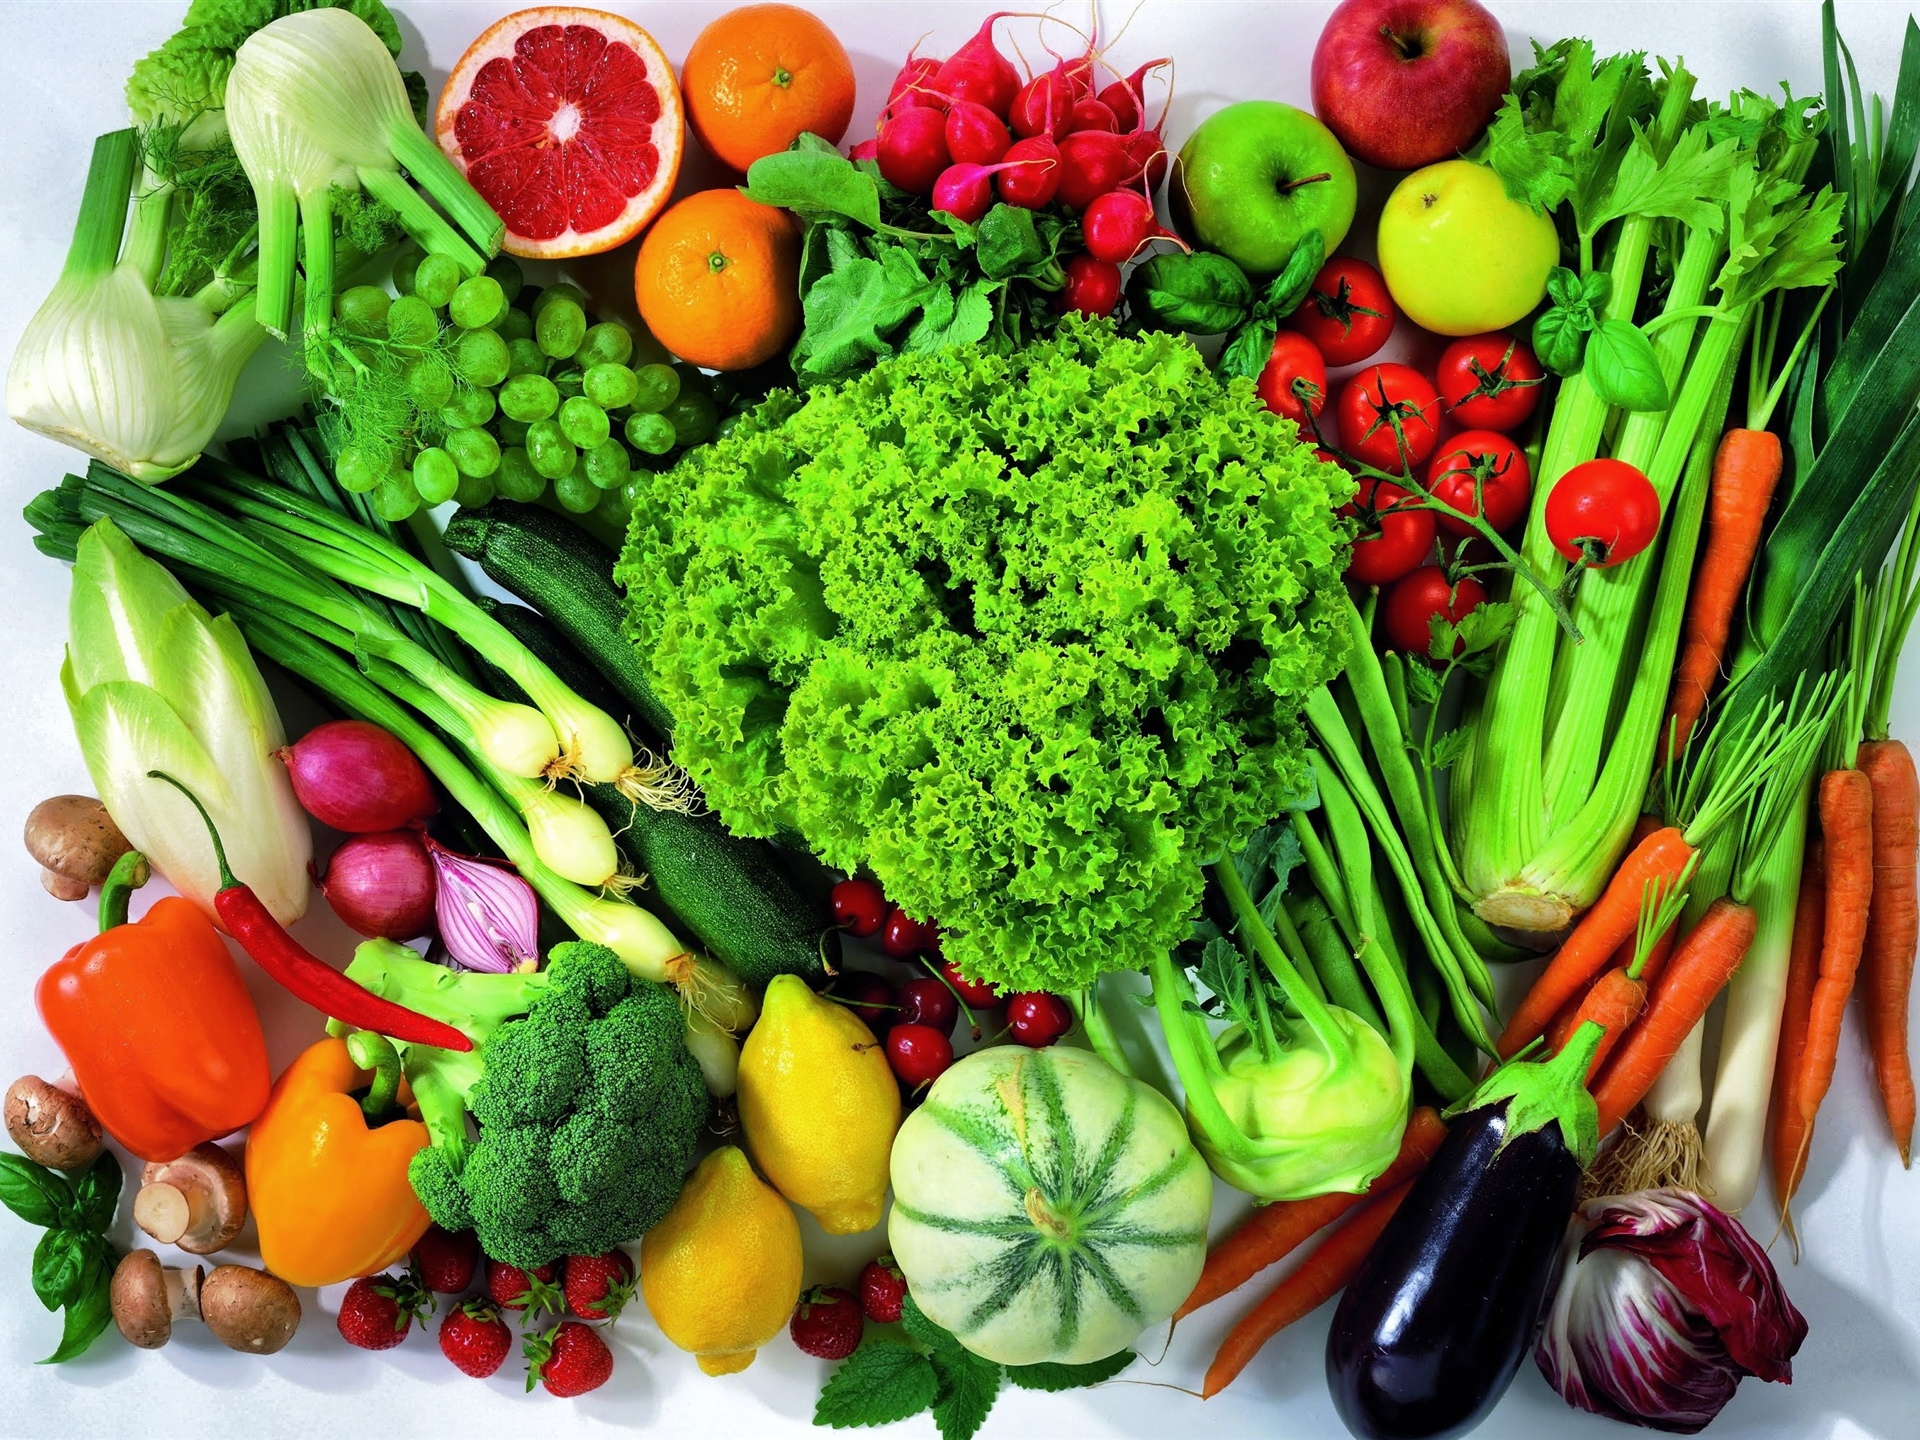 Many kinds of vegetables and fruits 1920x1440 wallpaper